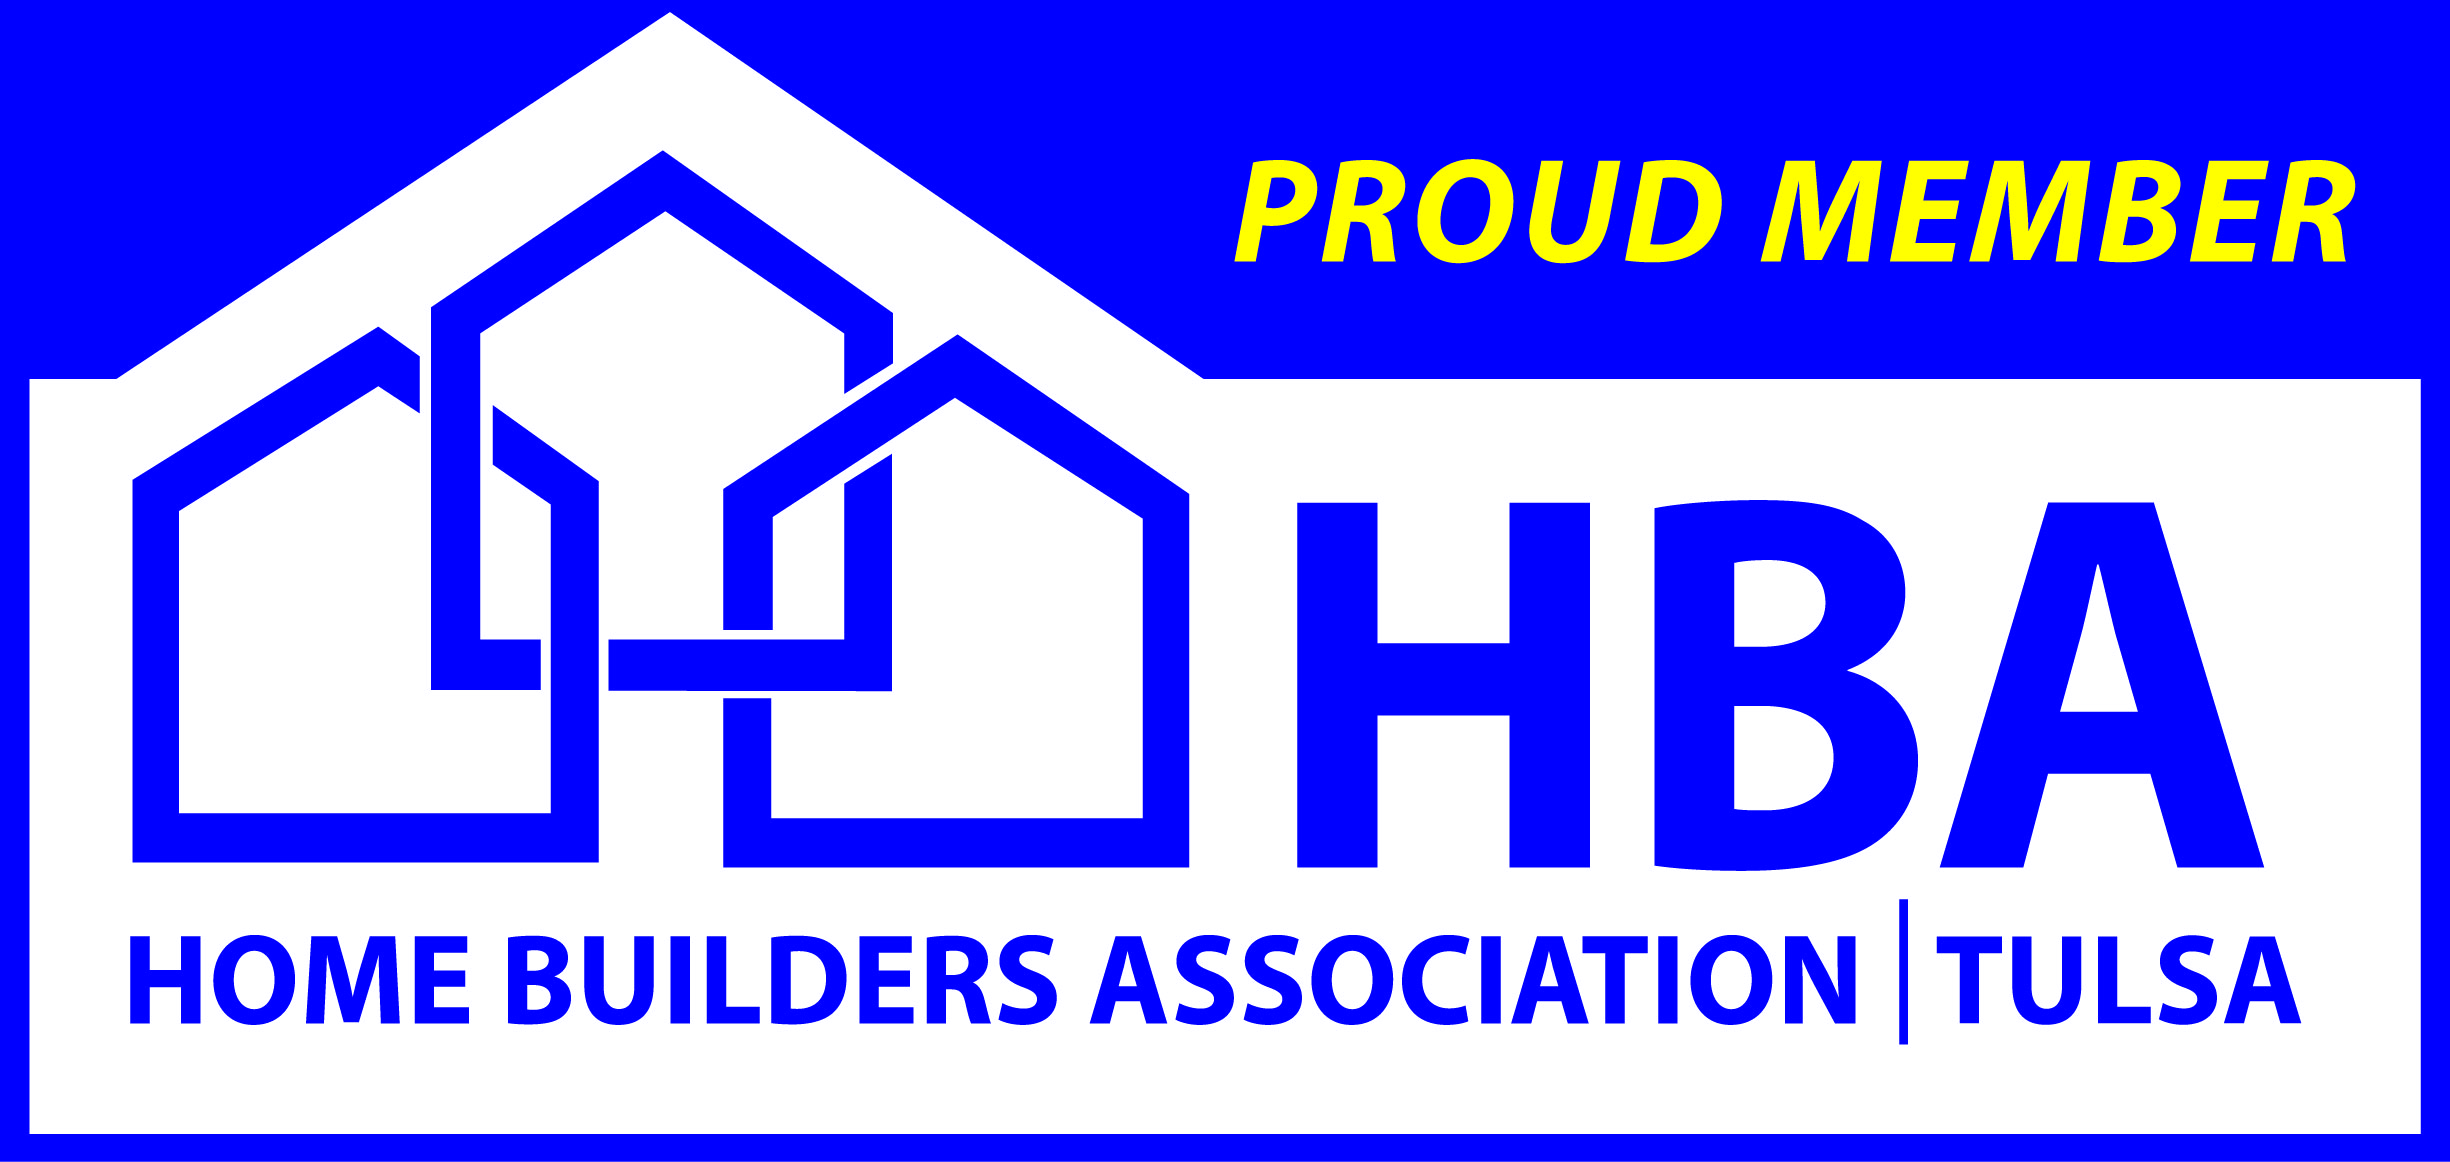 We are a proud member of the Home Builders Association